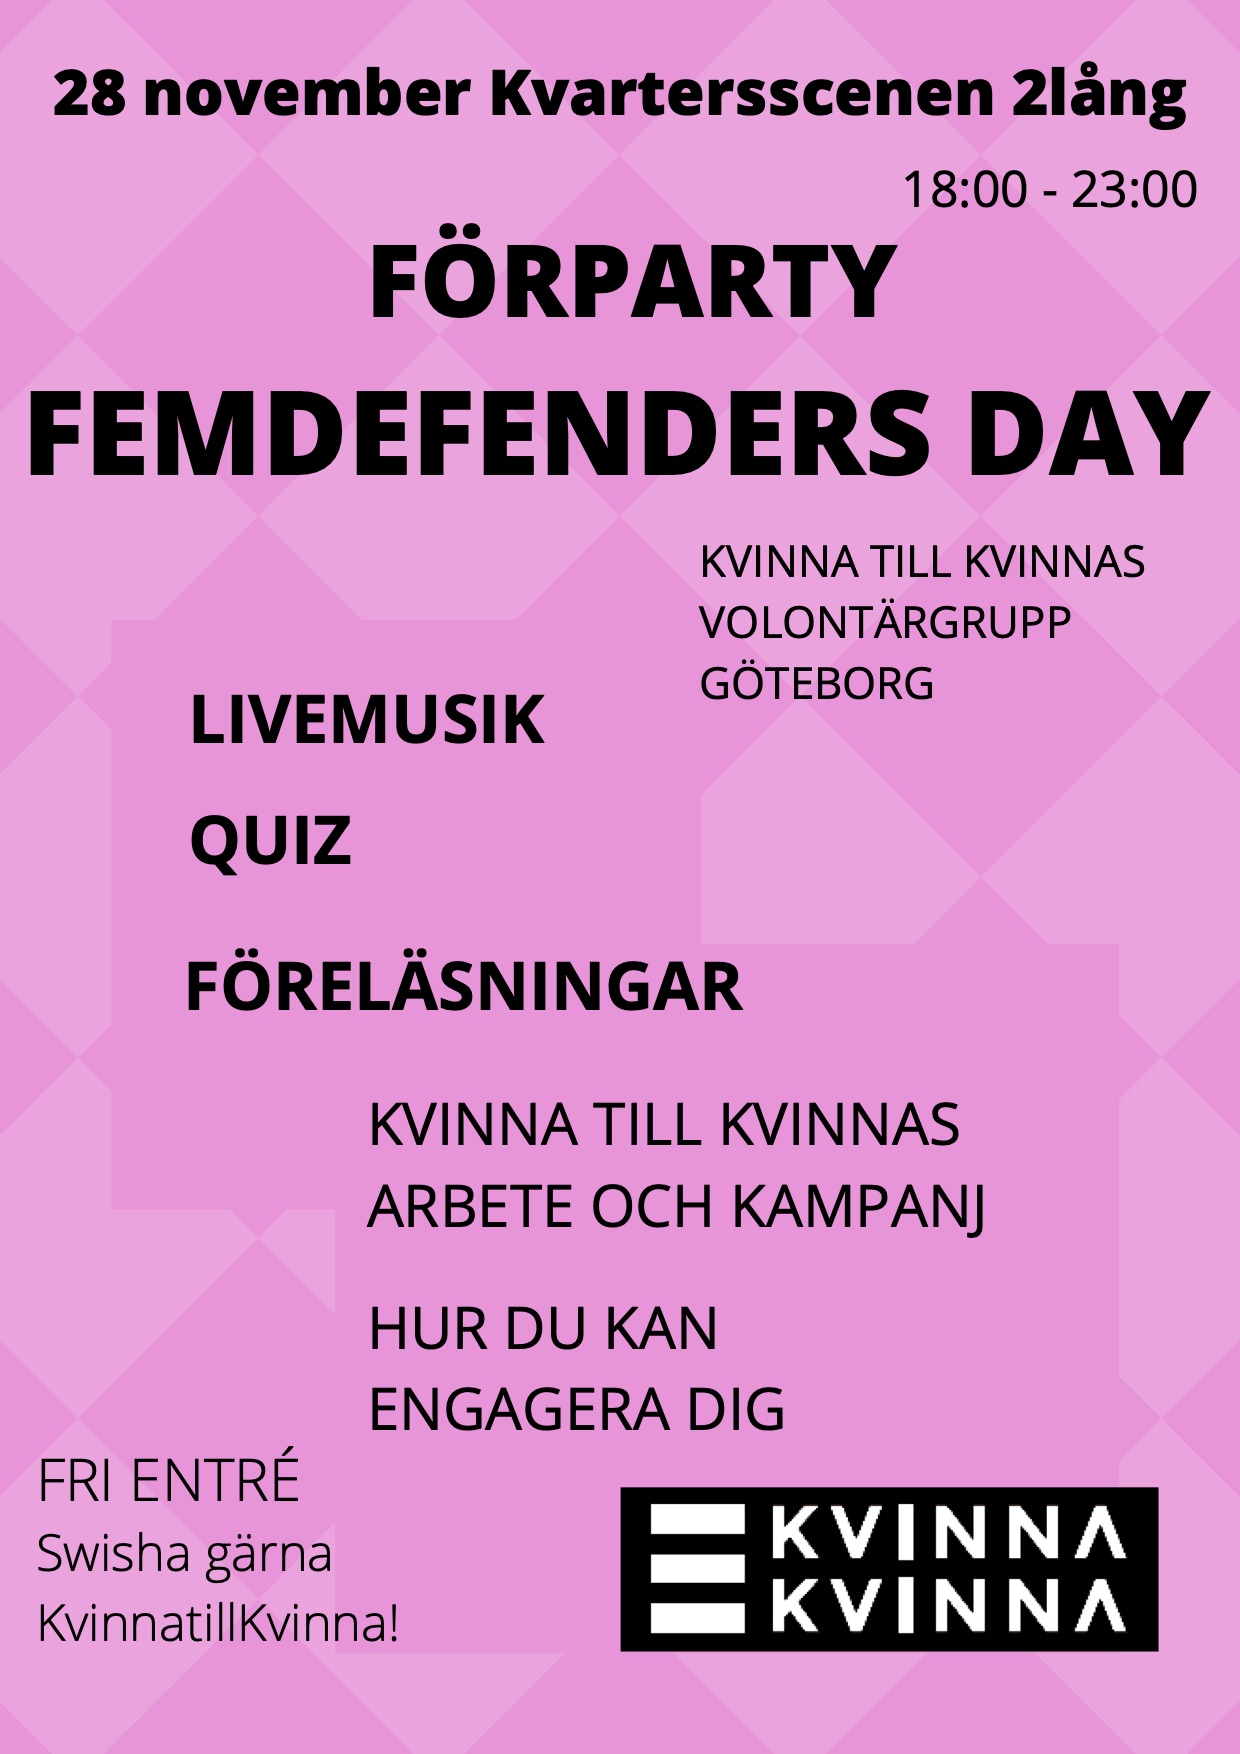 Förparty Femdefenders day